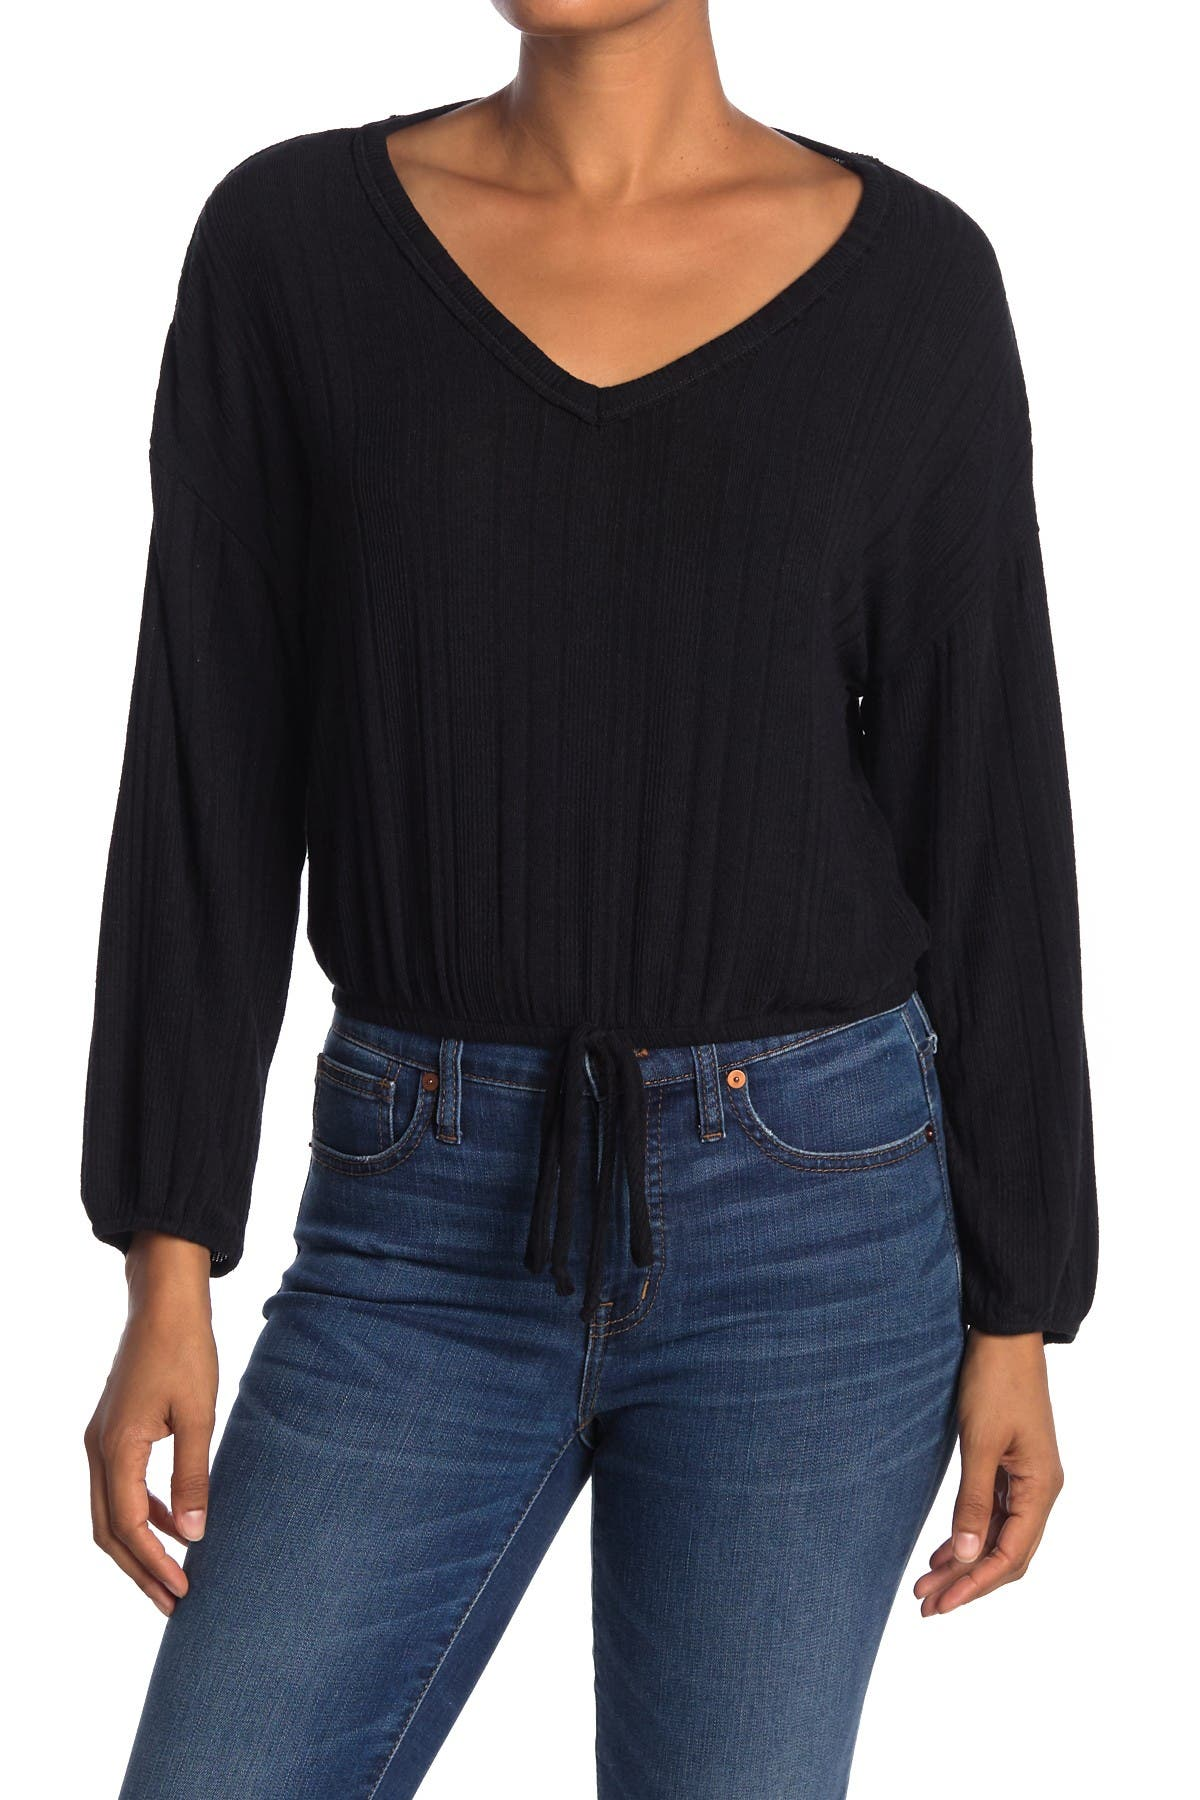 Image of WHITE WILLOW Long Sleeve Drawstring Top